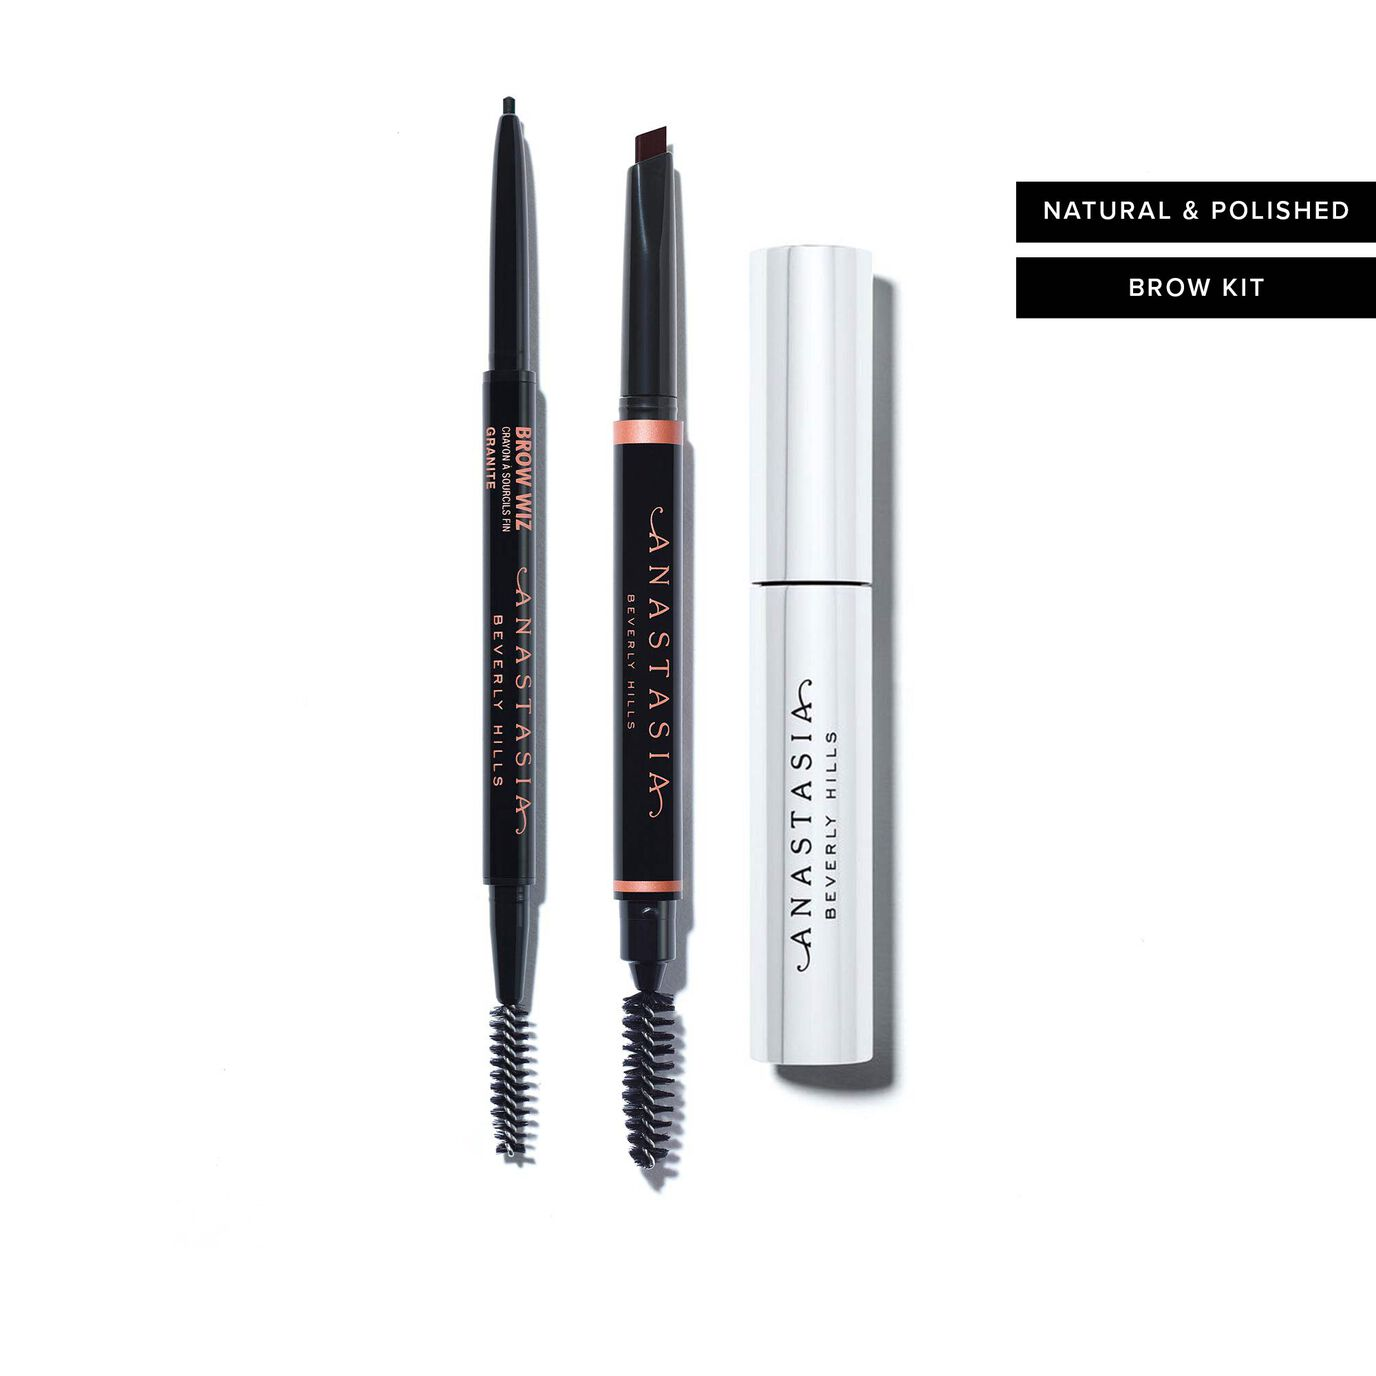 Natural & Polished Brow Kit  - Ebony and Granite